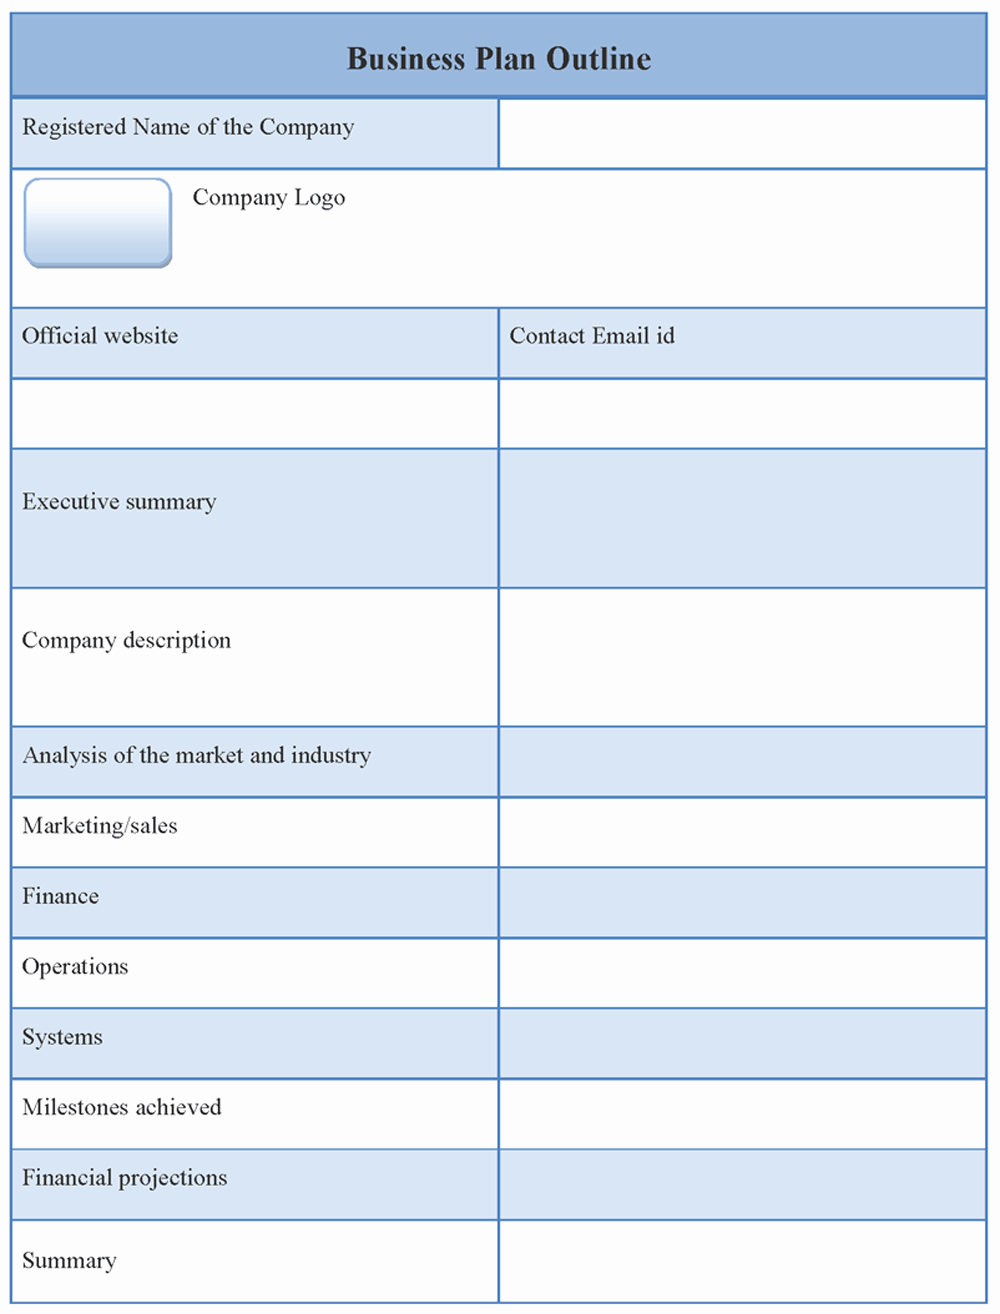 Template Of A Business Plan New Outline Template for Business Plan format Of Business